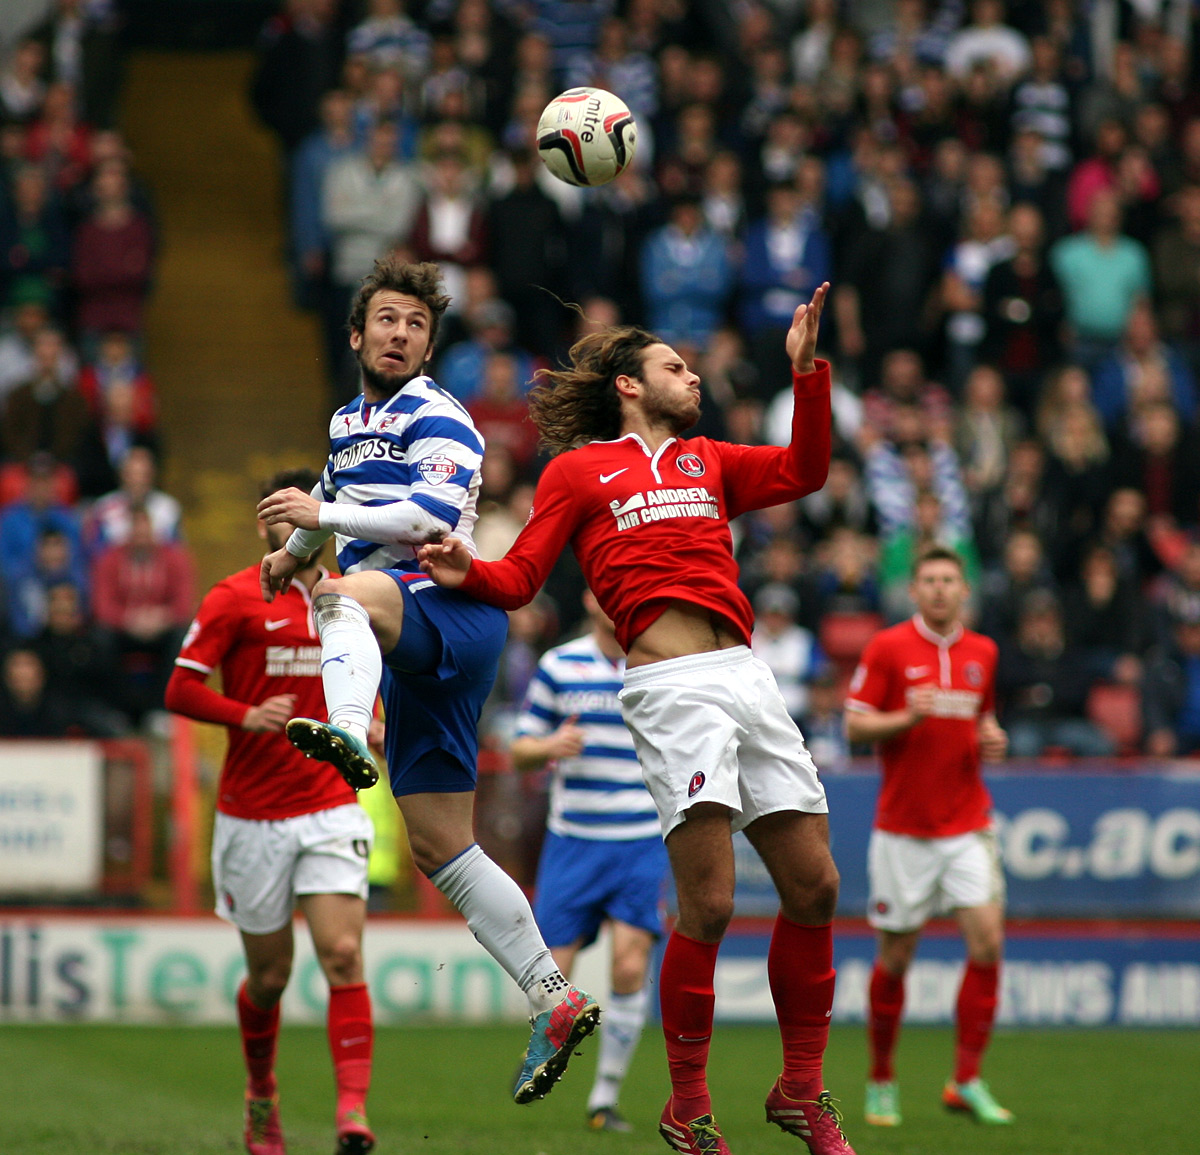 News Shopper: Adam Le Fondre beats Diego Poyet to a header